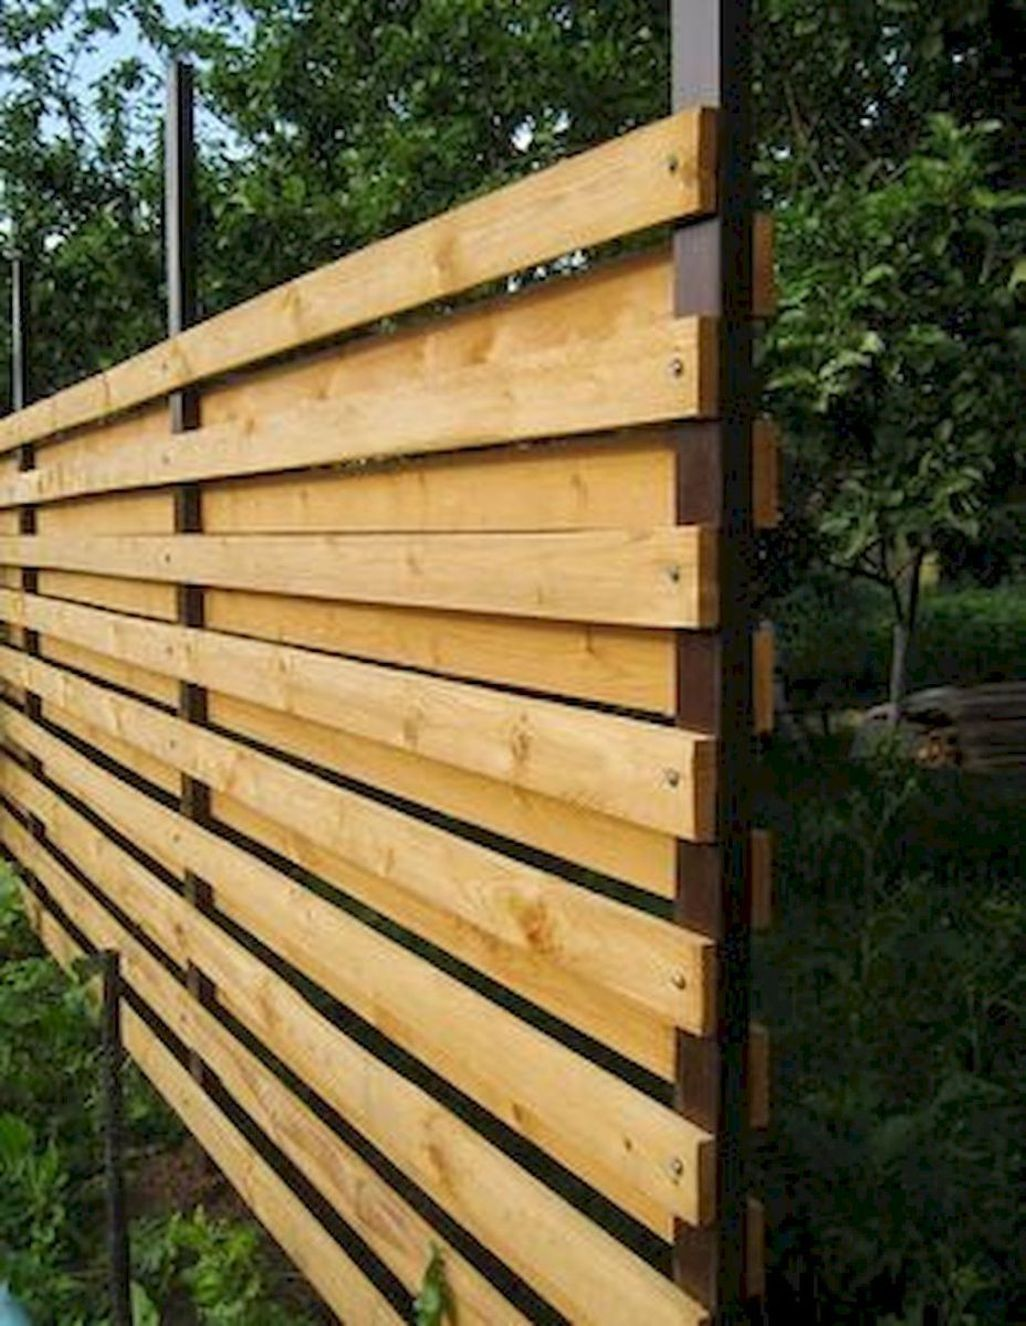 Bon These Fence Decorations Are Fantastic Ways To Dress Up Your Outdoor Space.  If You Would Like Certain Ideas For Privacy Fences, ...